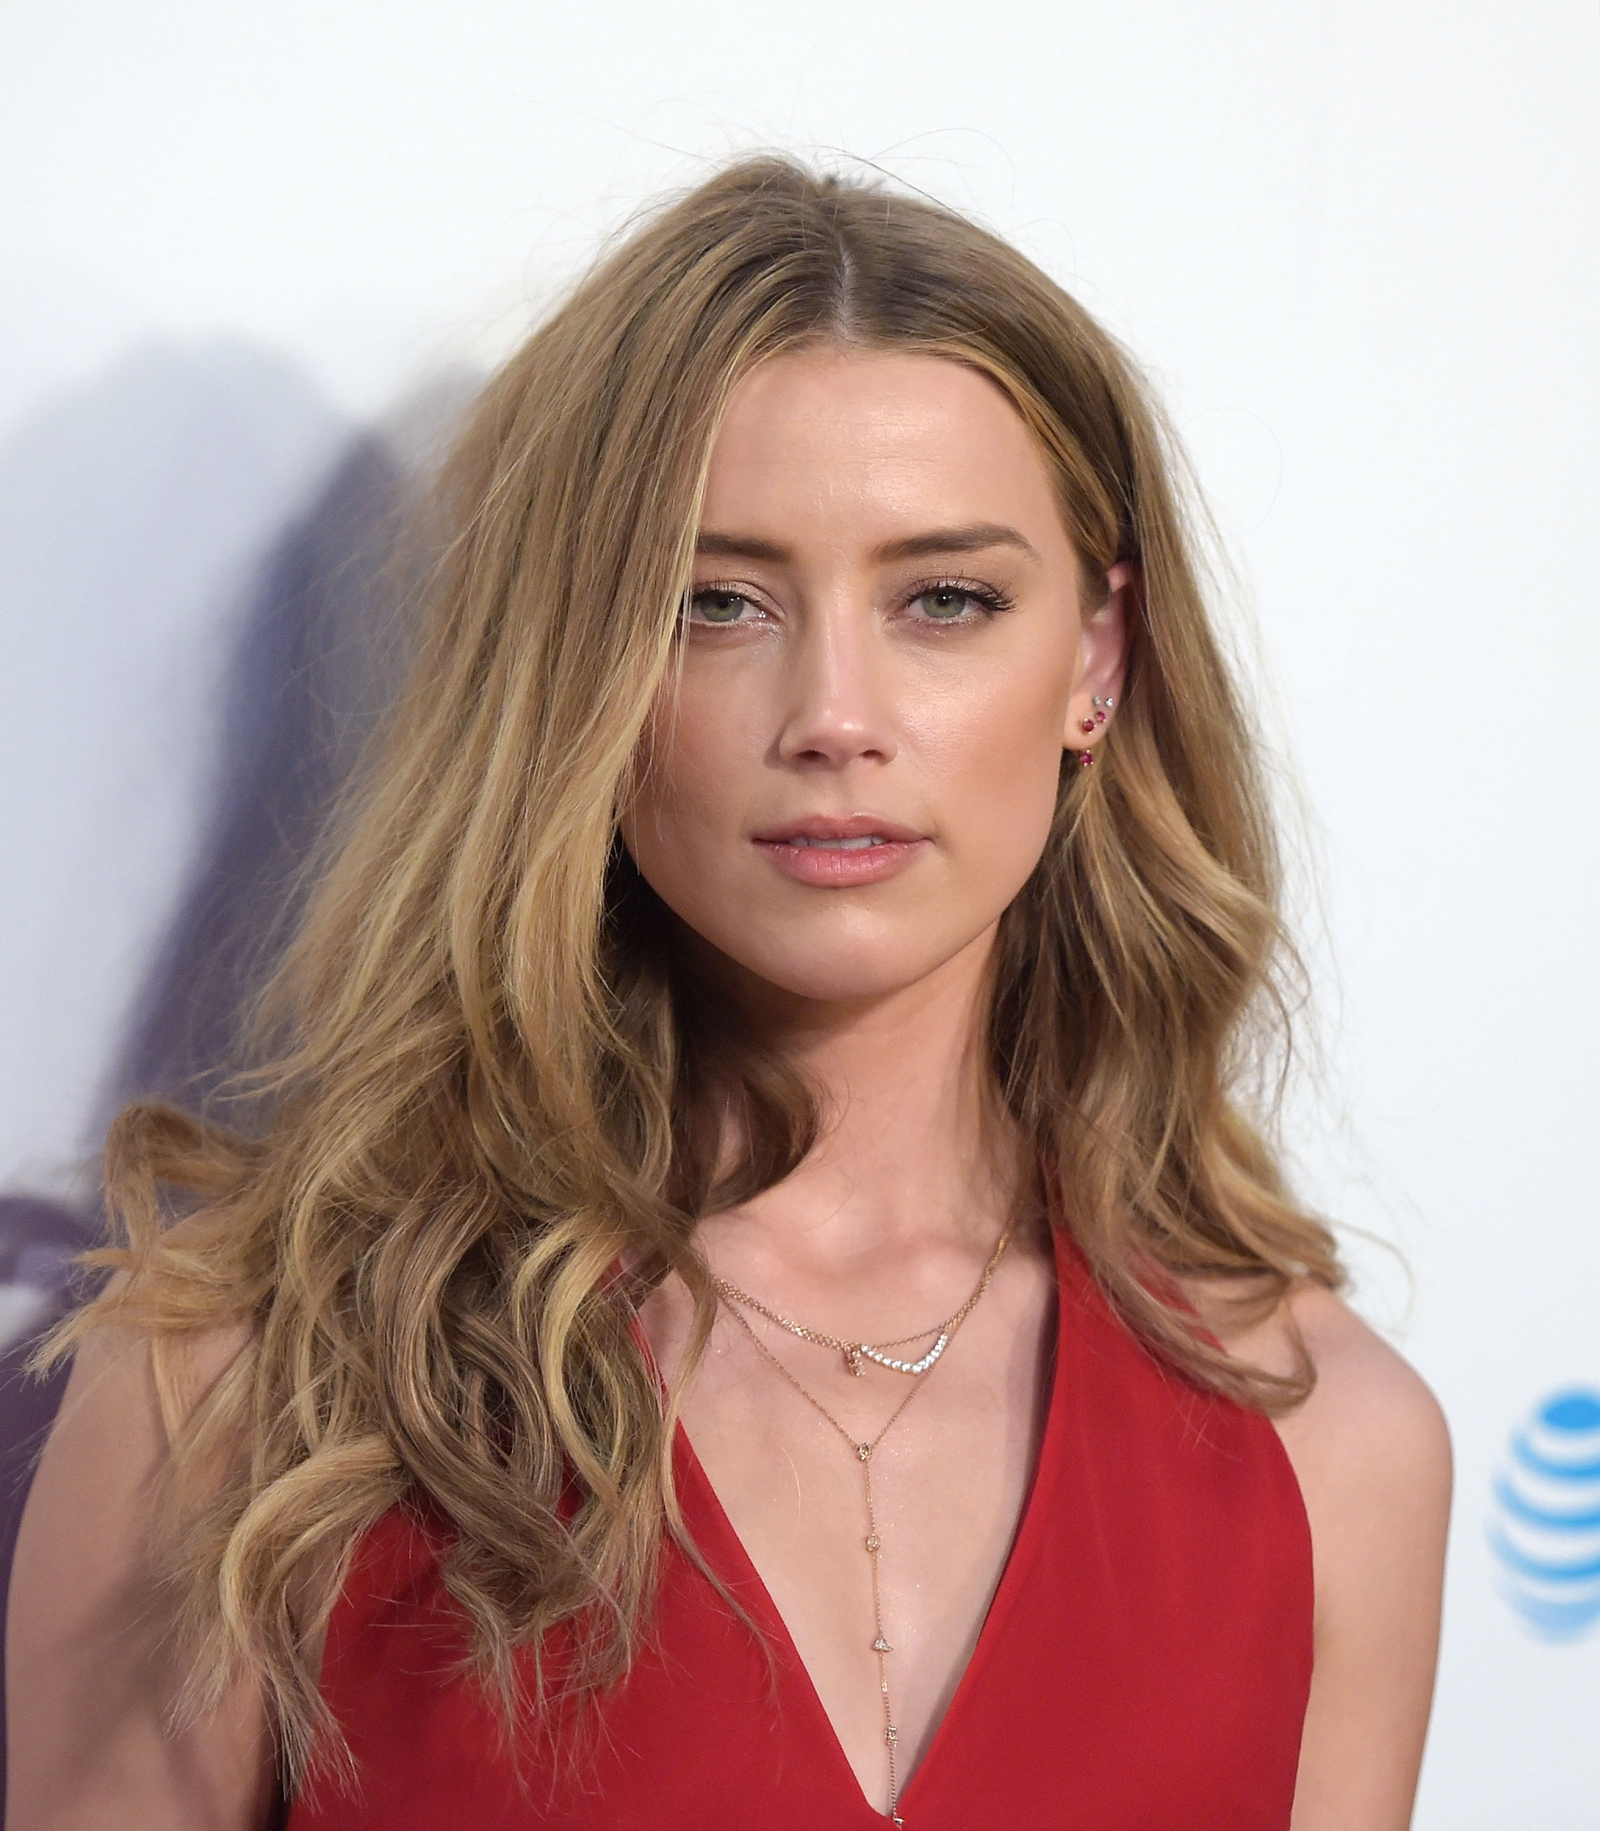 Amber Heard is seen with bruises after Johnny Depp video leak Amber Heard